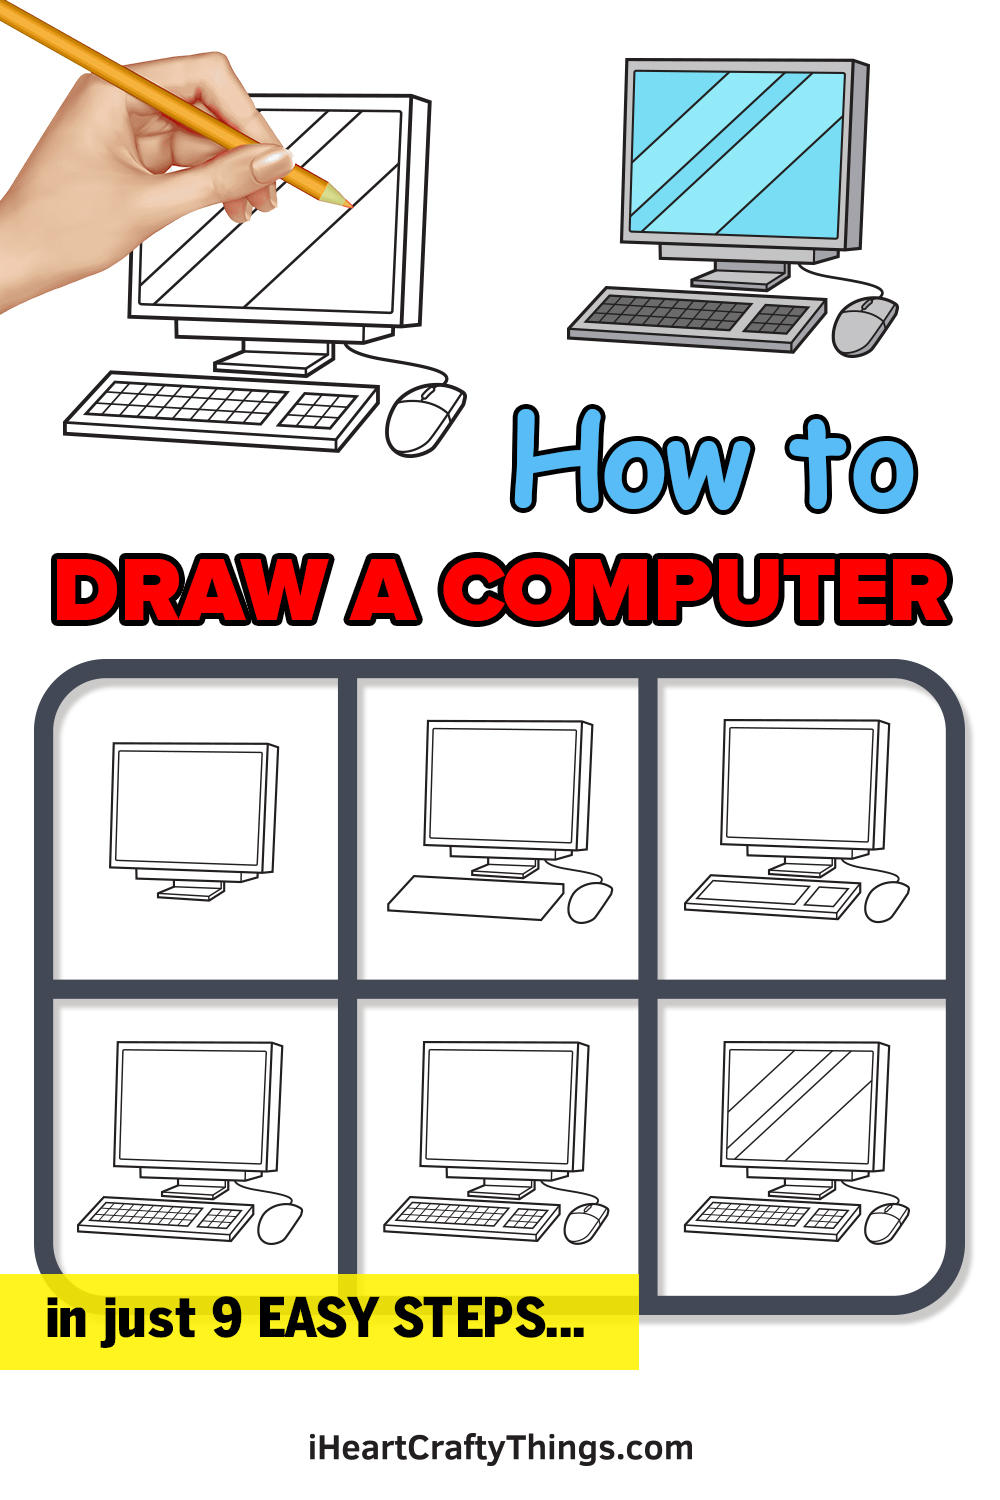 how to draw computer in 9 easy steps